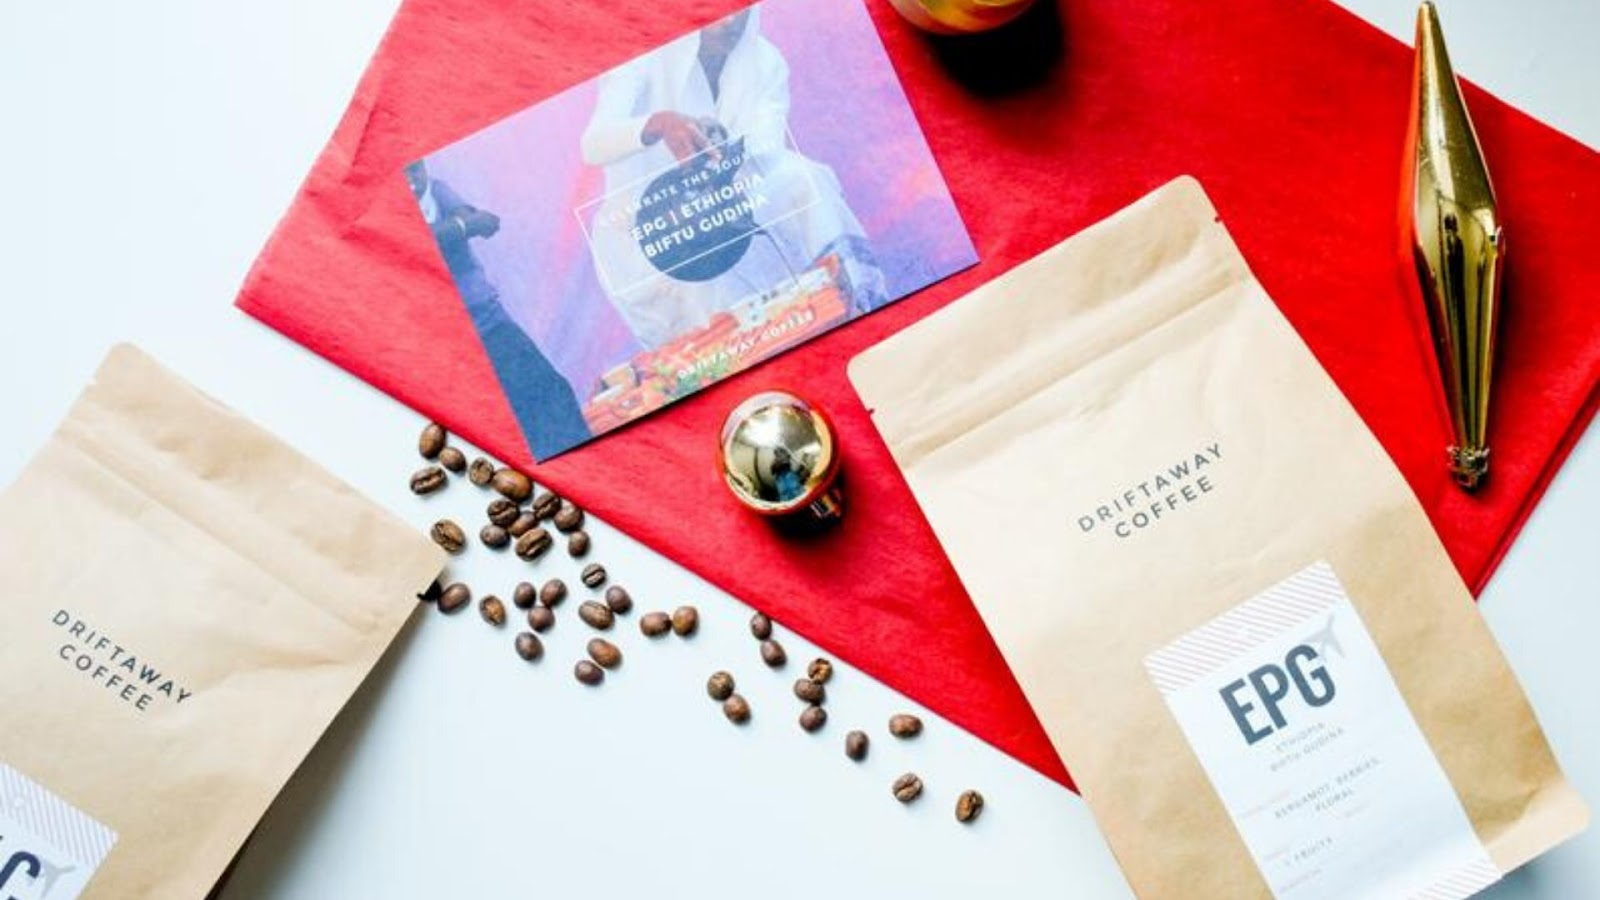 Eco friendly gifts - world coffee sampler